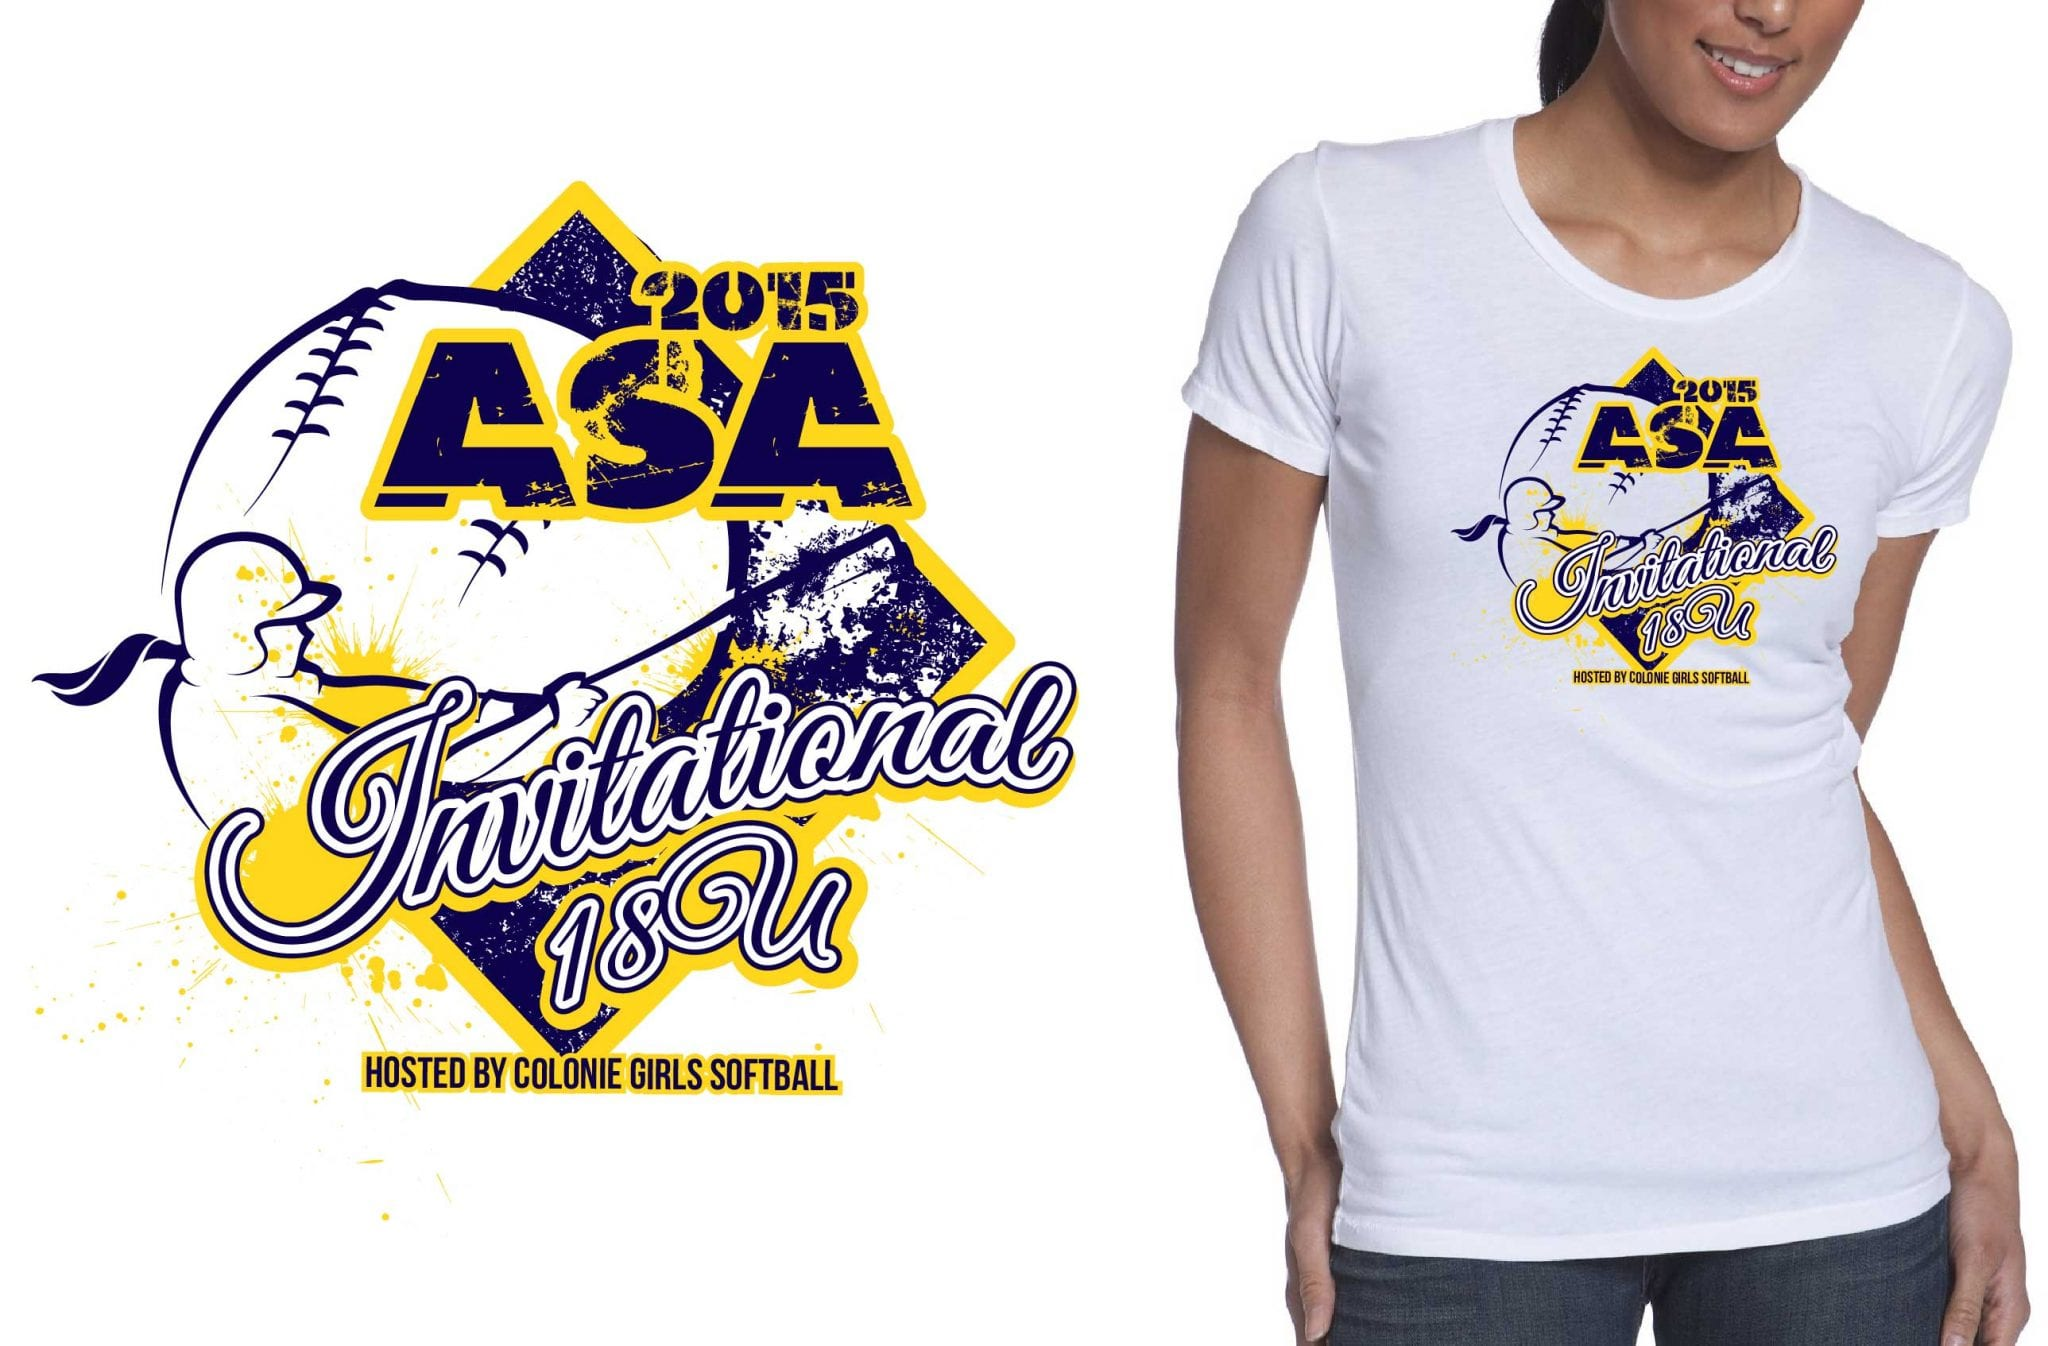 Design t shirt best - 2015 16u 18u Asa Invitational Best T Shirt Logo Design For Softball Event Color Separated Vector File By Ur Art Studio Graphic Design Studio